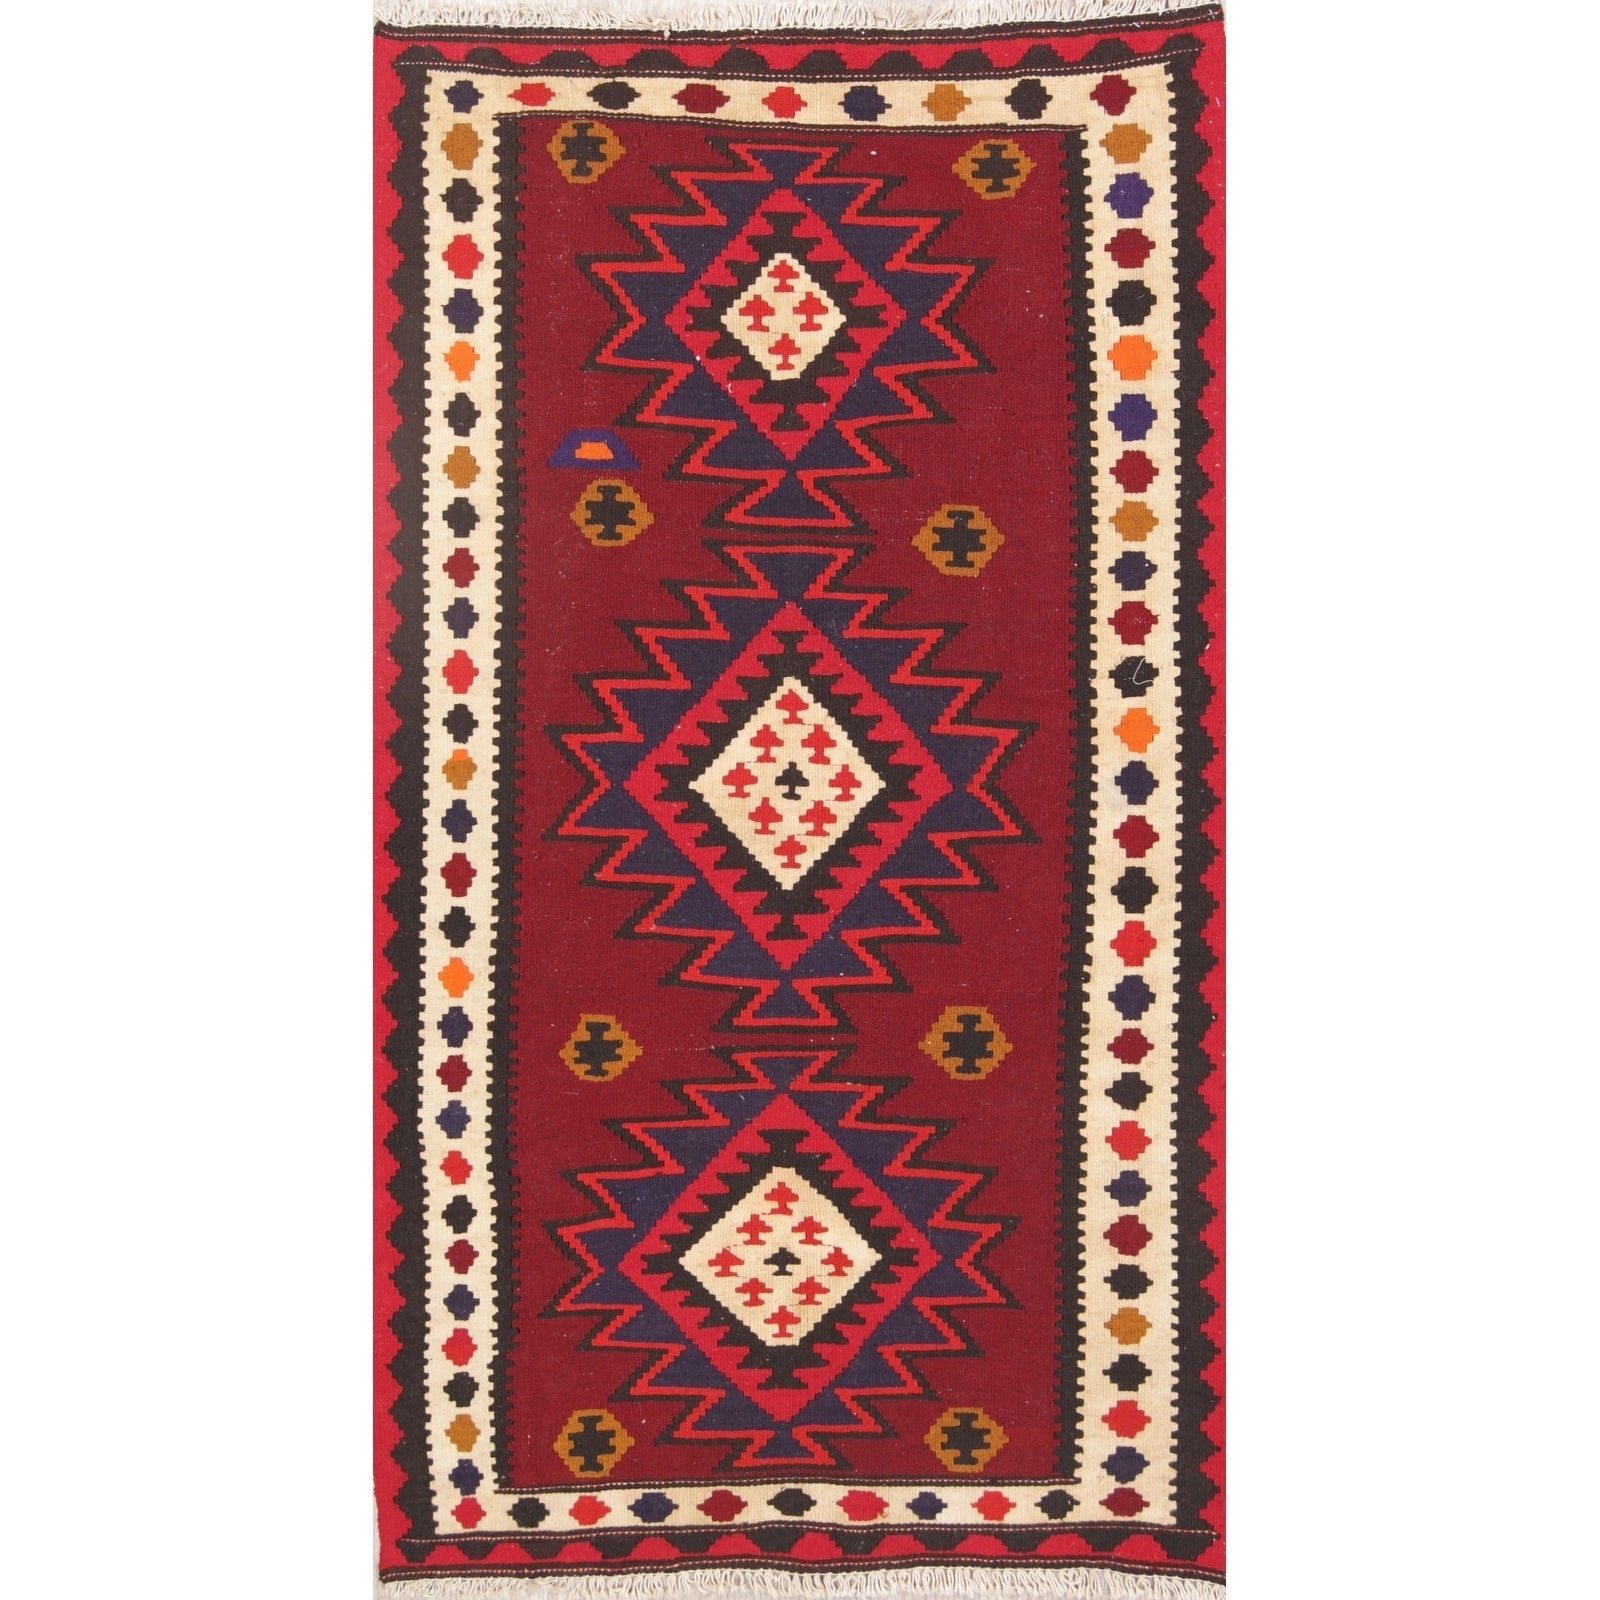 Hand Woven Wool Geometric Kilim Shiraz Persian Rug For Bedroom 5 10 X 3 3 Runner